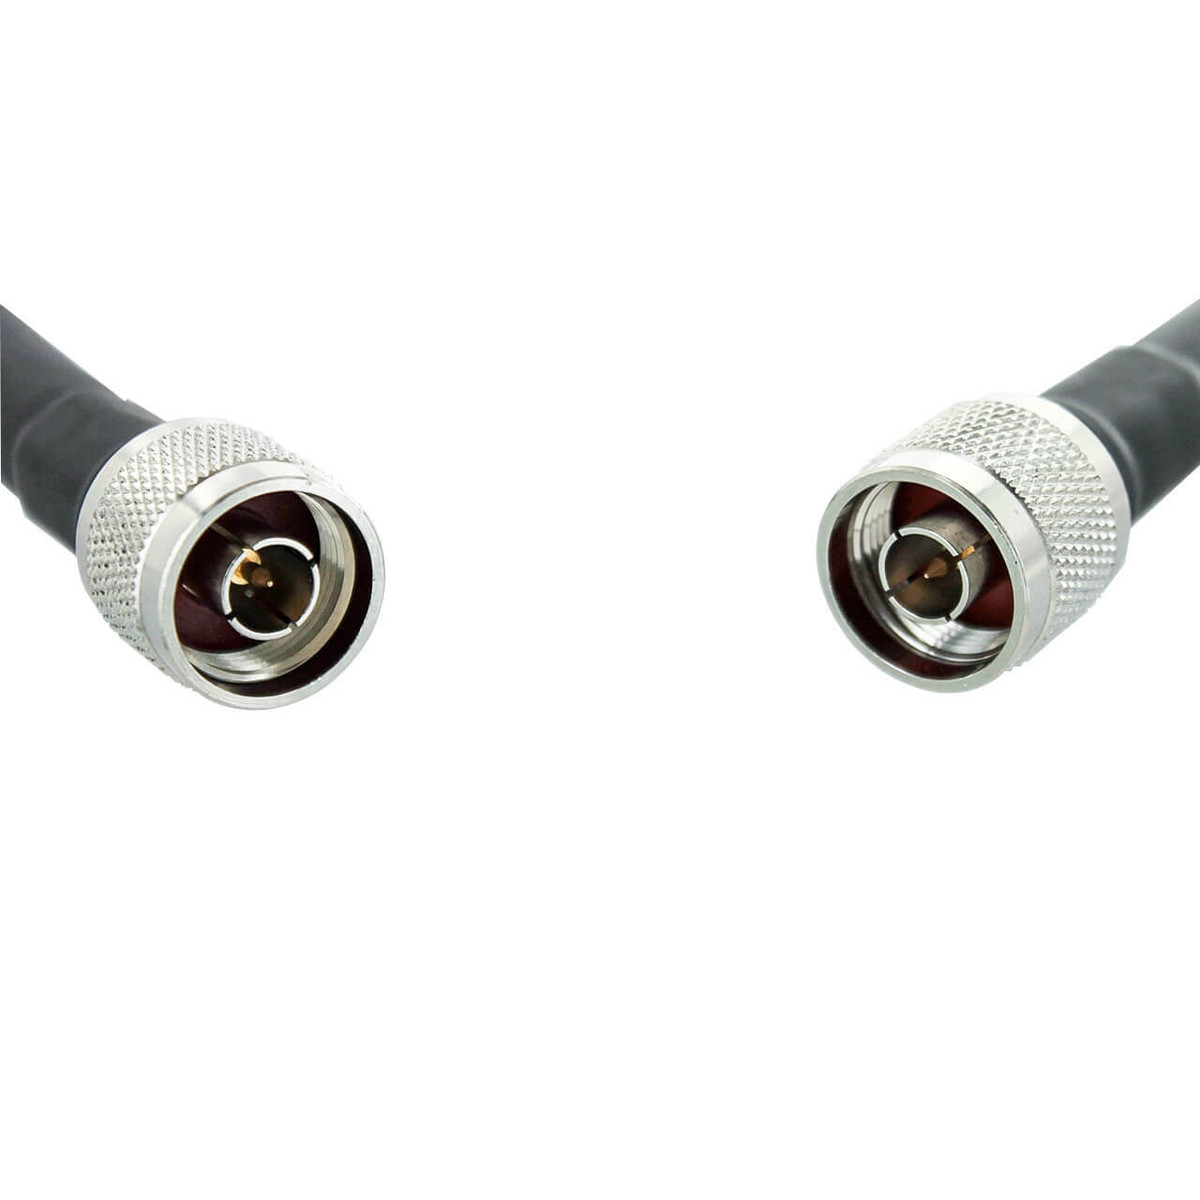 Bolton Technical N-Male to N-Male Bolton400 Ultra Low-Loss Coax Cable | 100 ft. Cable